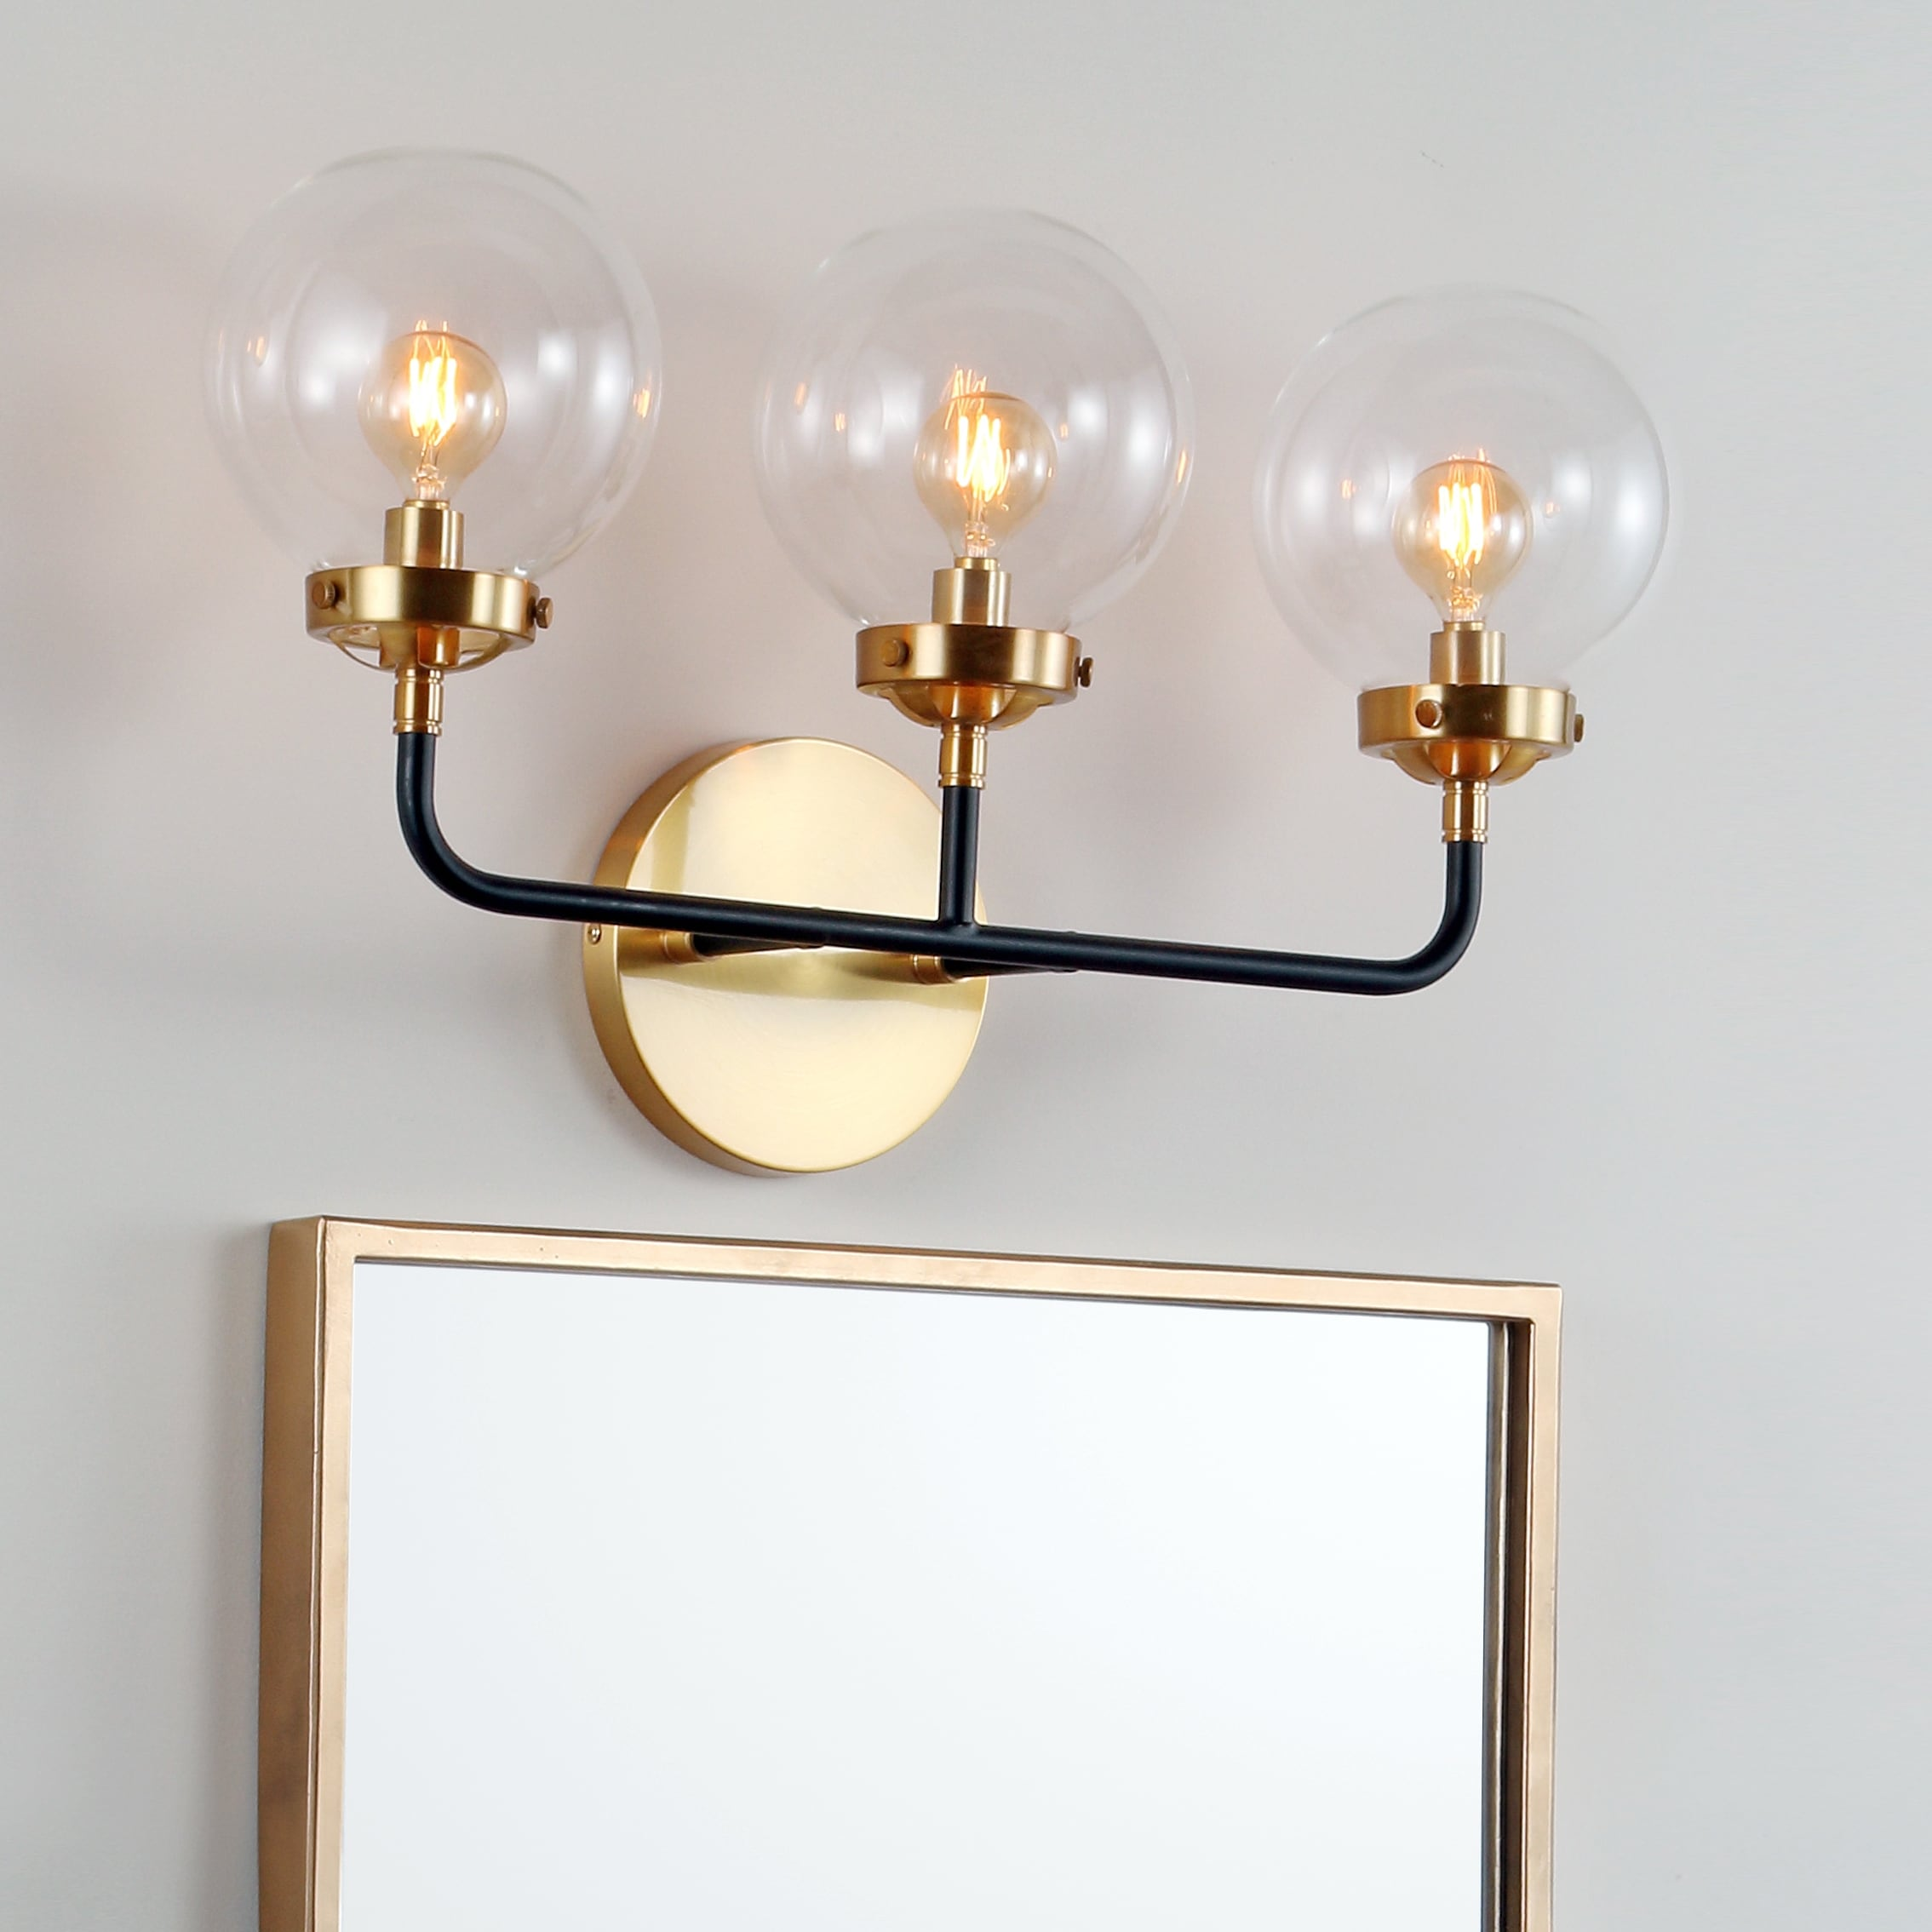 Image of: Shop Black Friday Deals On Caleb 3 Light 22 Brass Wall Sconce Black Brass By Jonathan Y On Sale Overstock 20711836